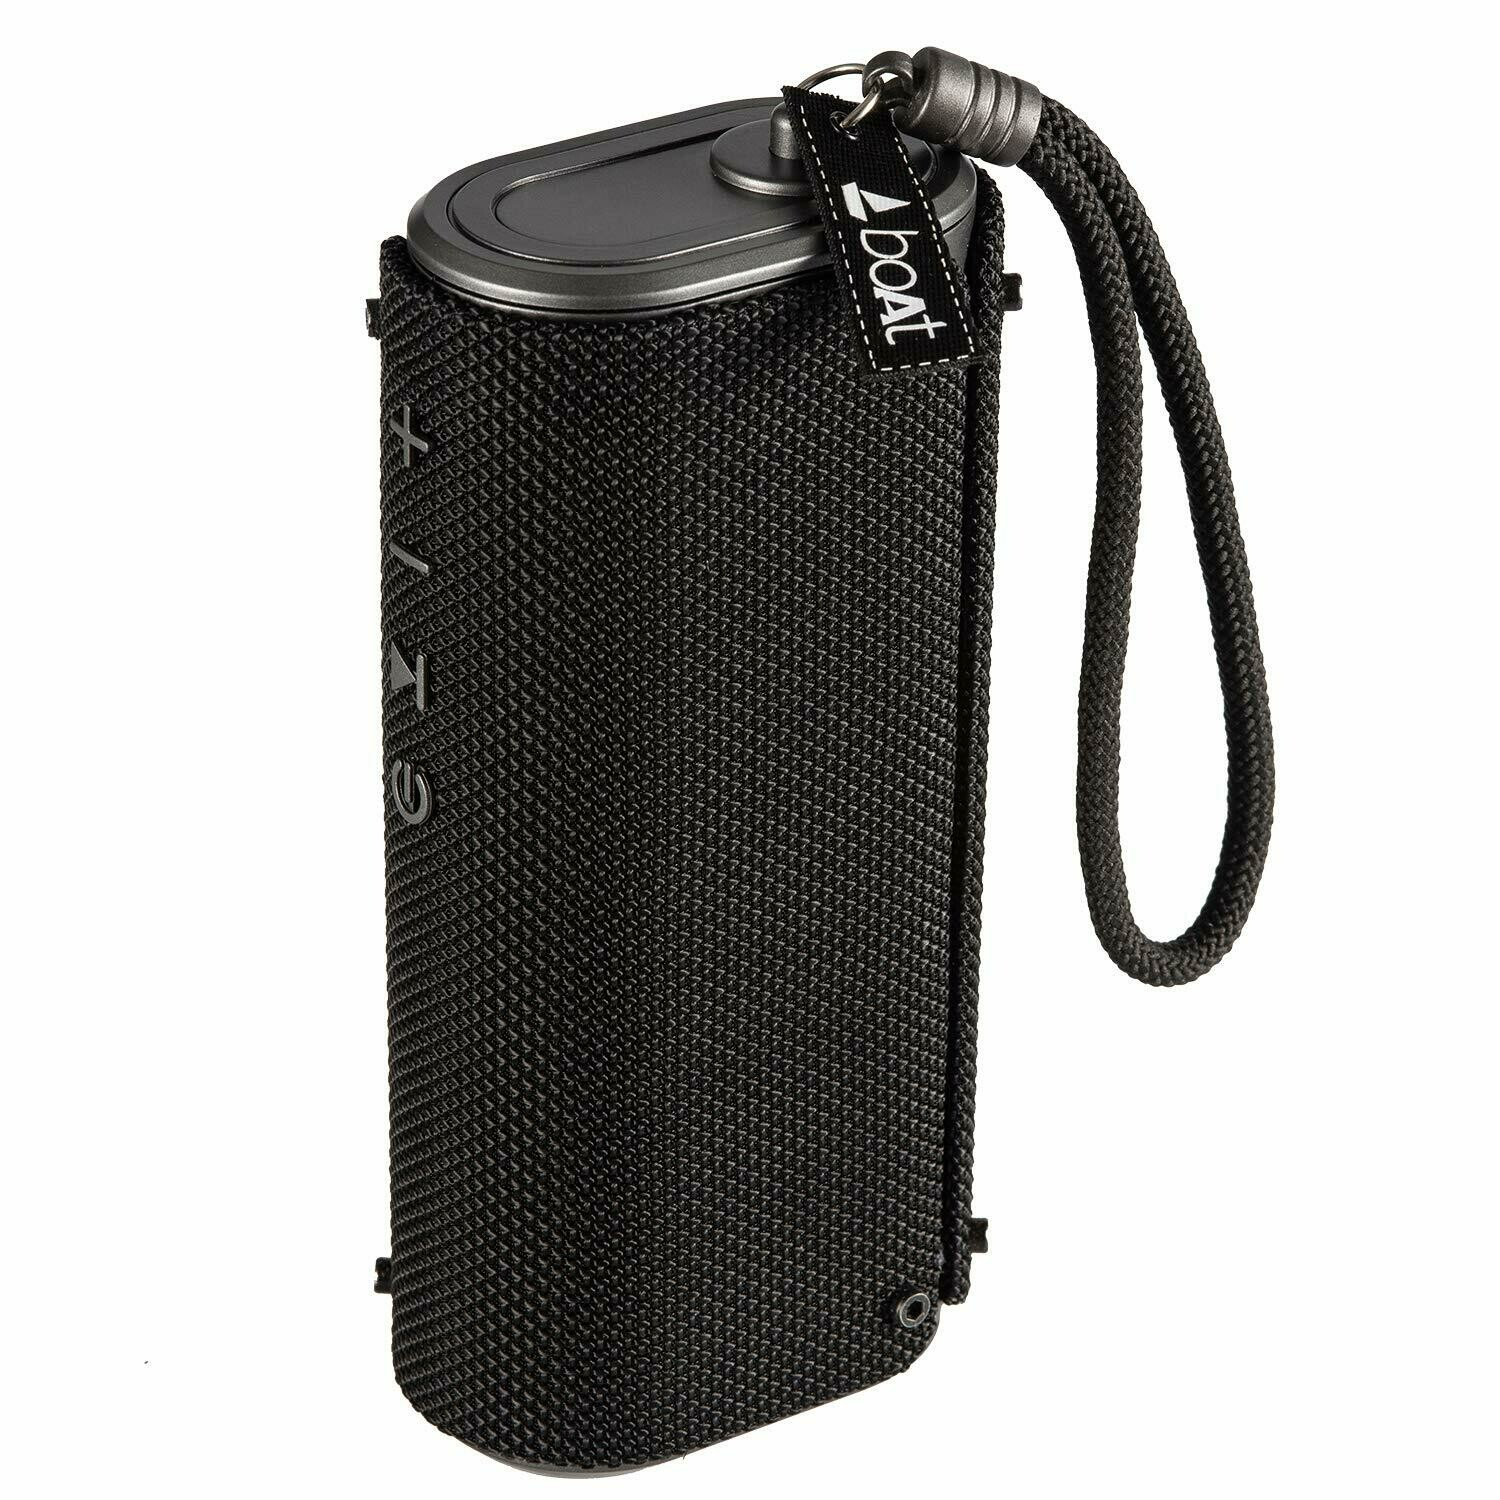 boAt Stone Grenade XL Portable Bluetooth Speakers